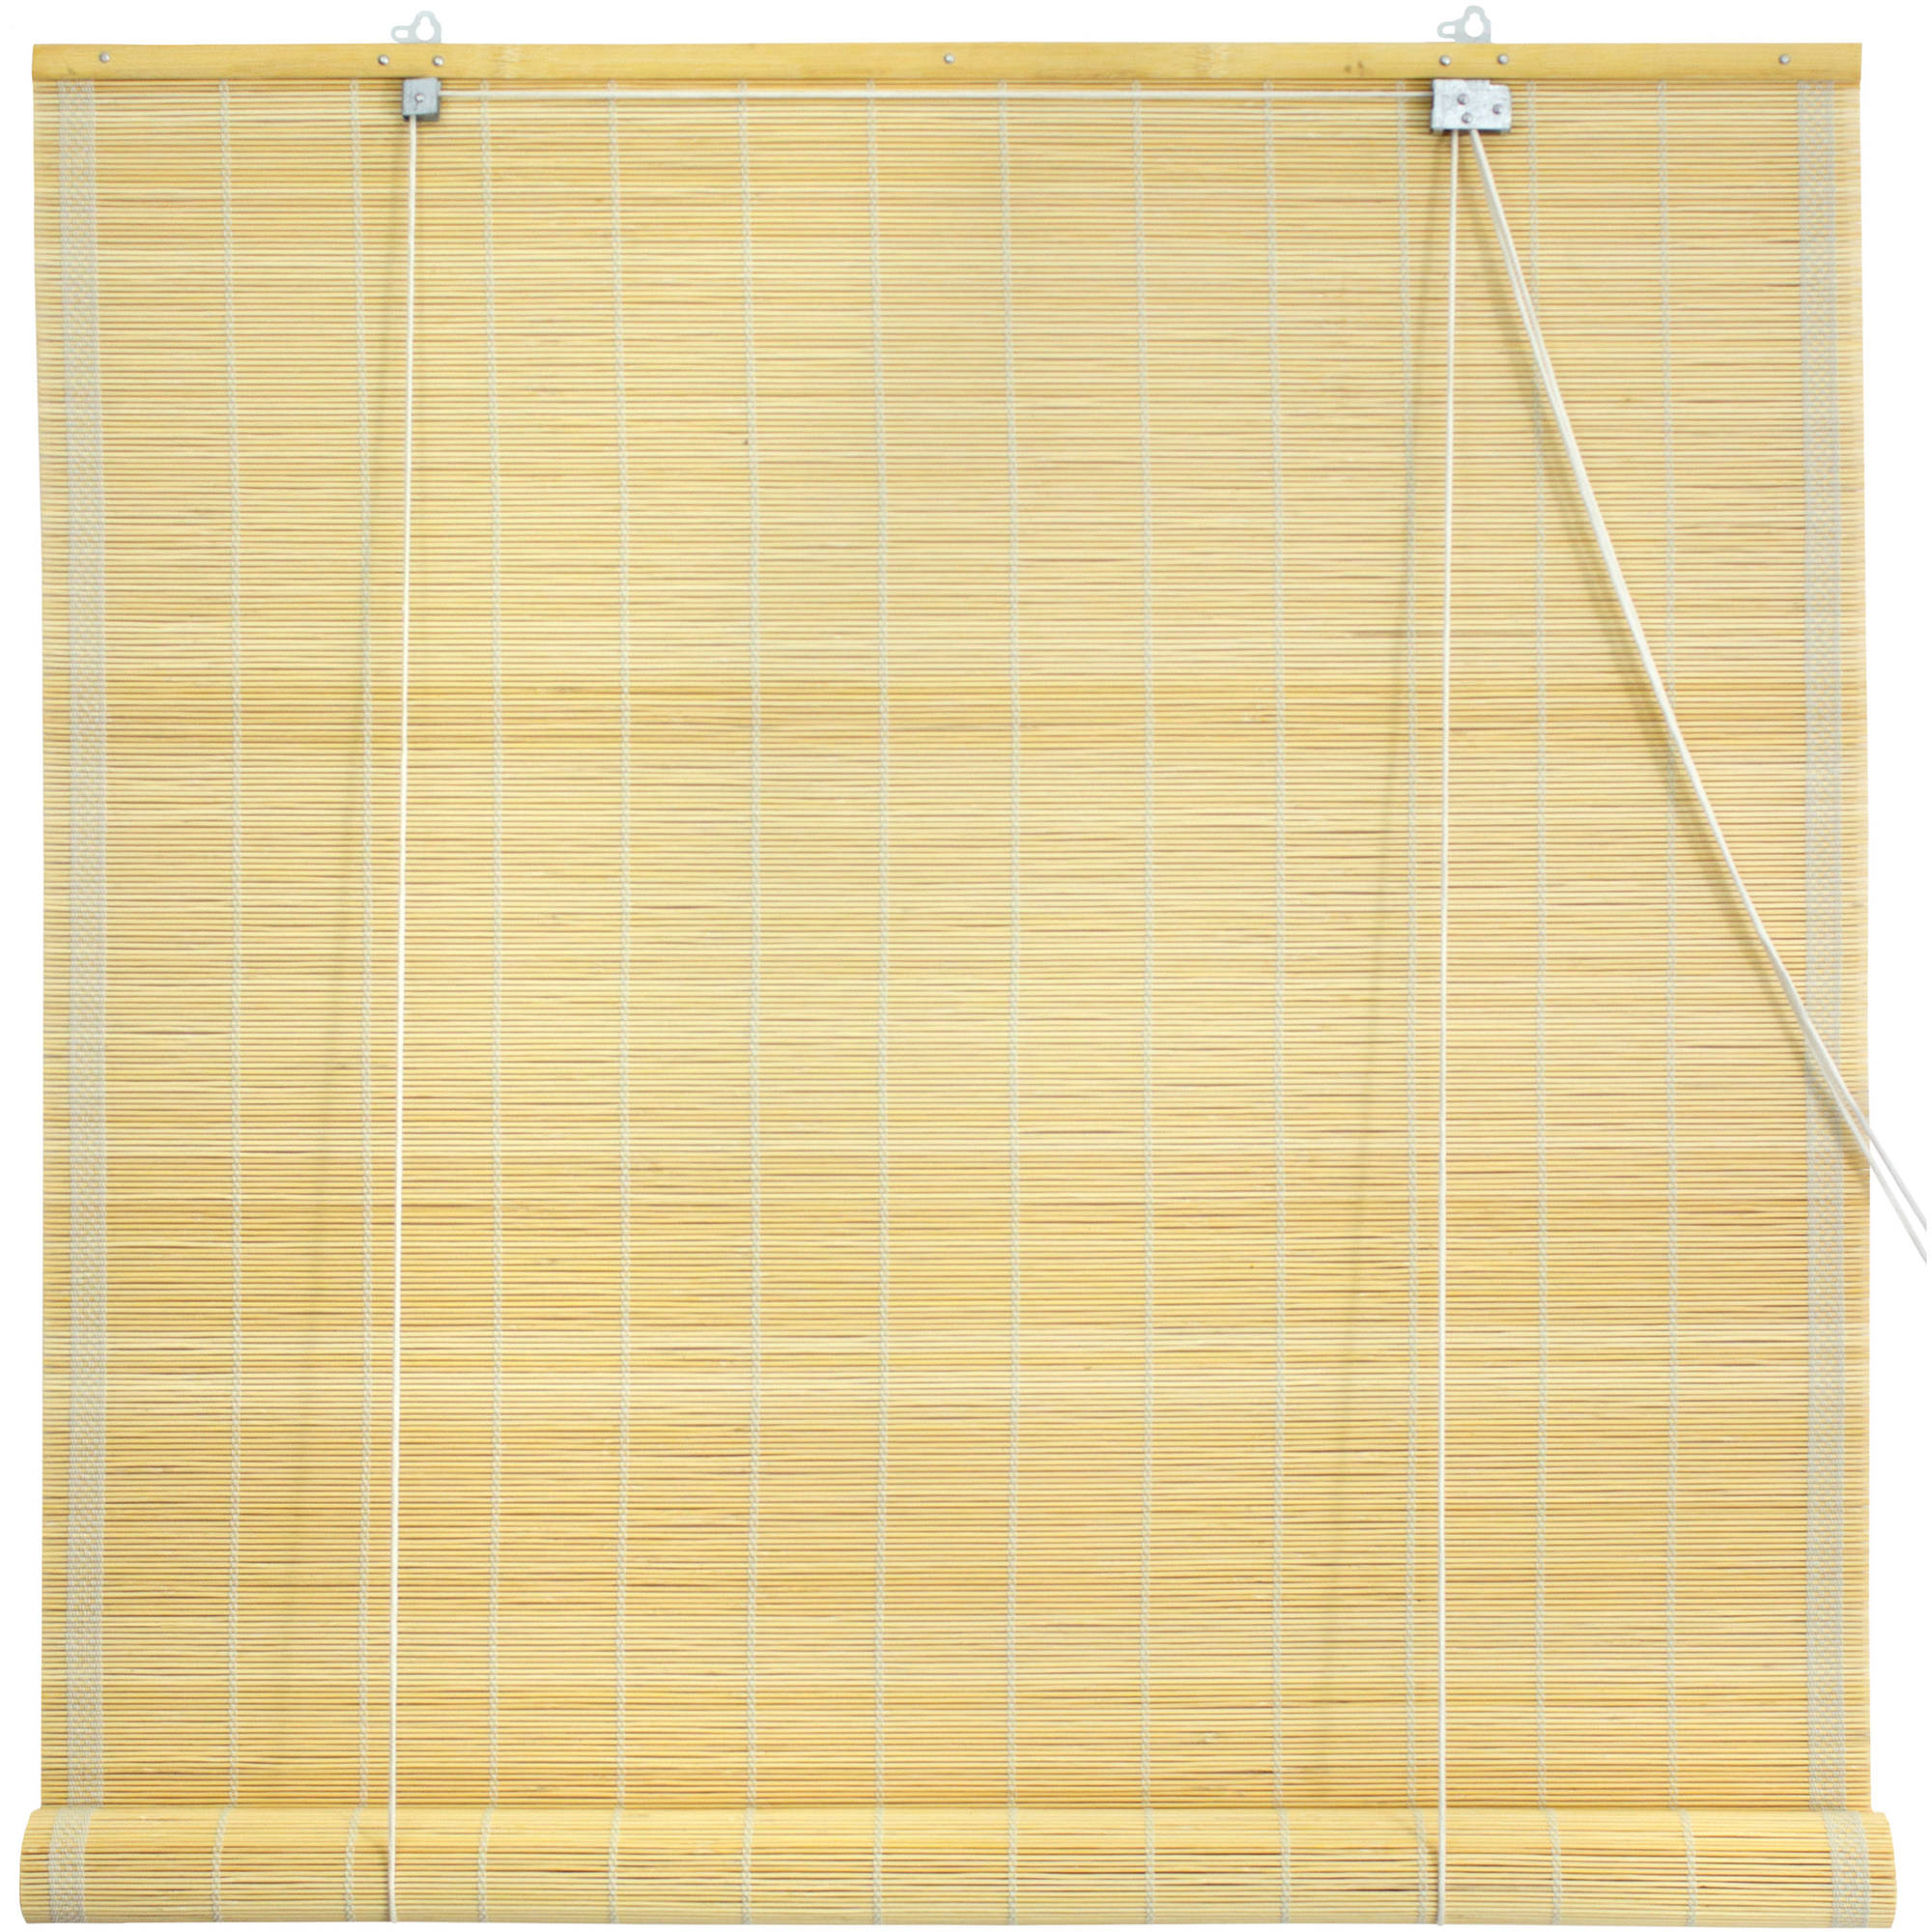 Matchstick Roll Up Blinds, Natural